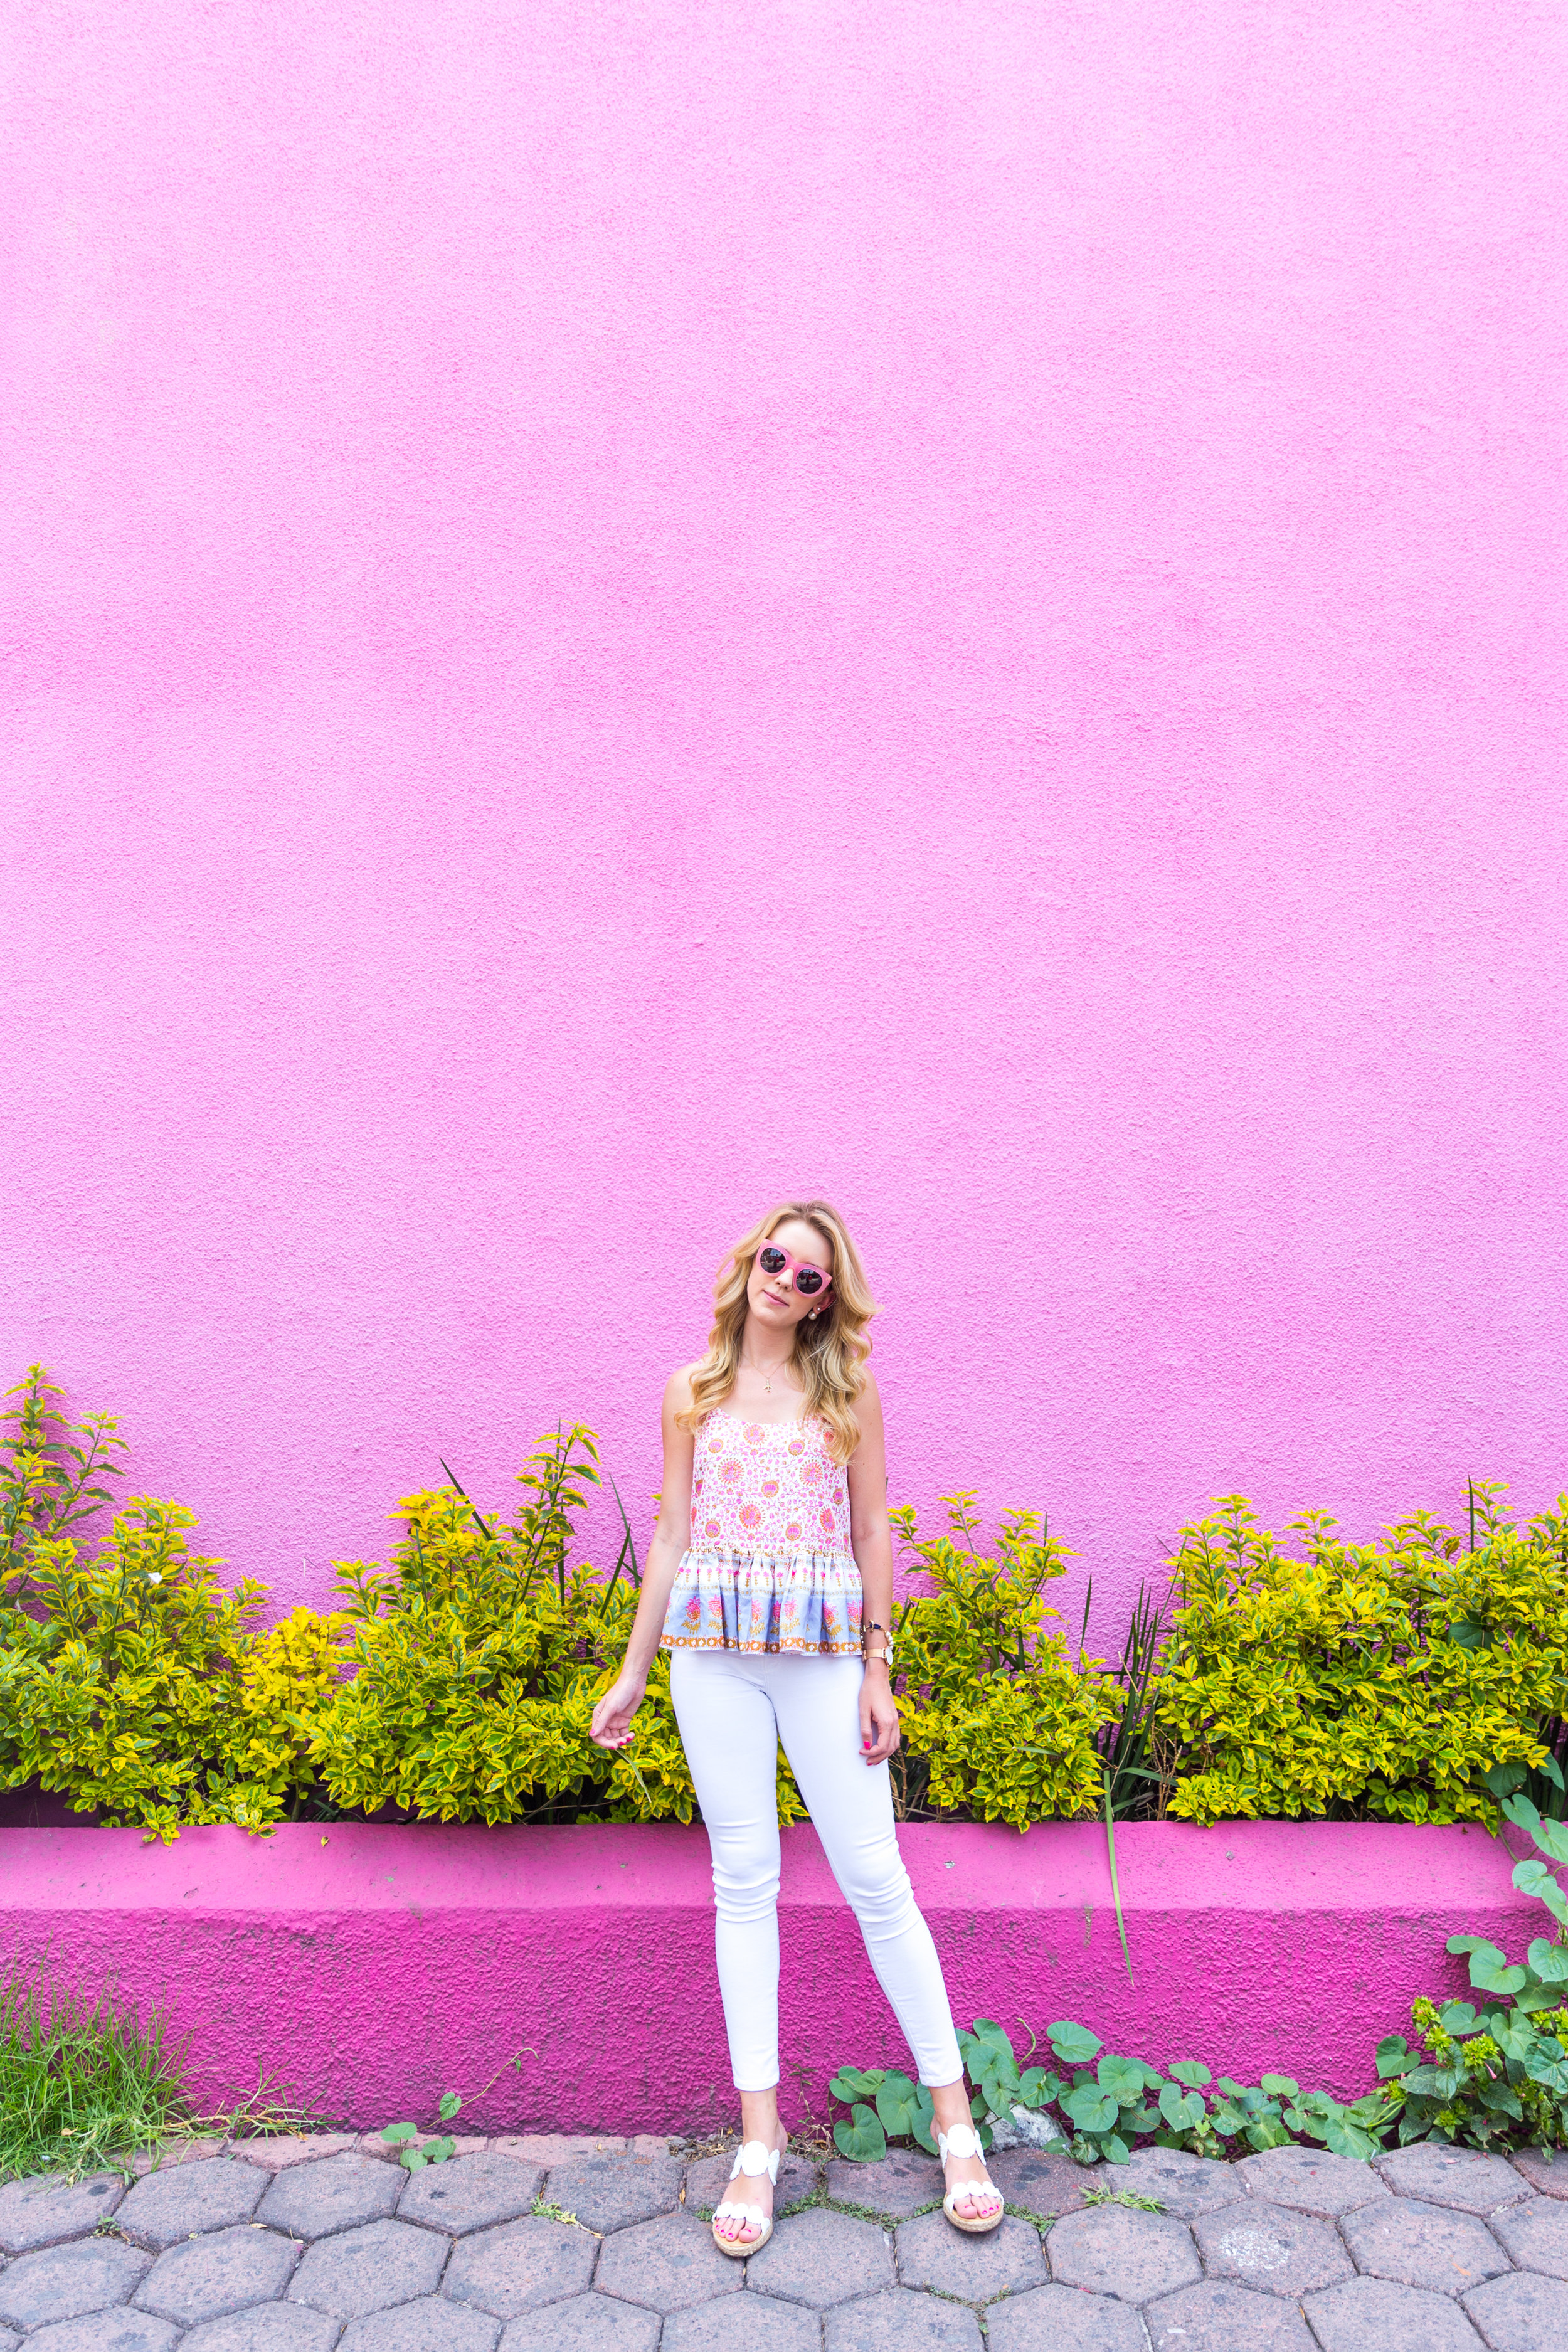 Mexico City Pink Wall Summer Outfit White Jeans Peplum Cami-3.jpg